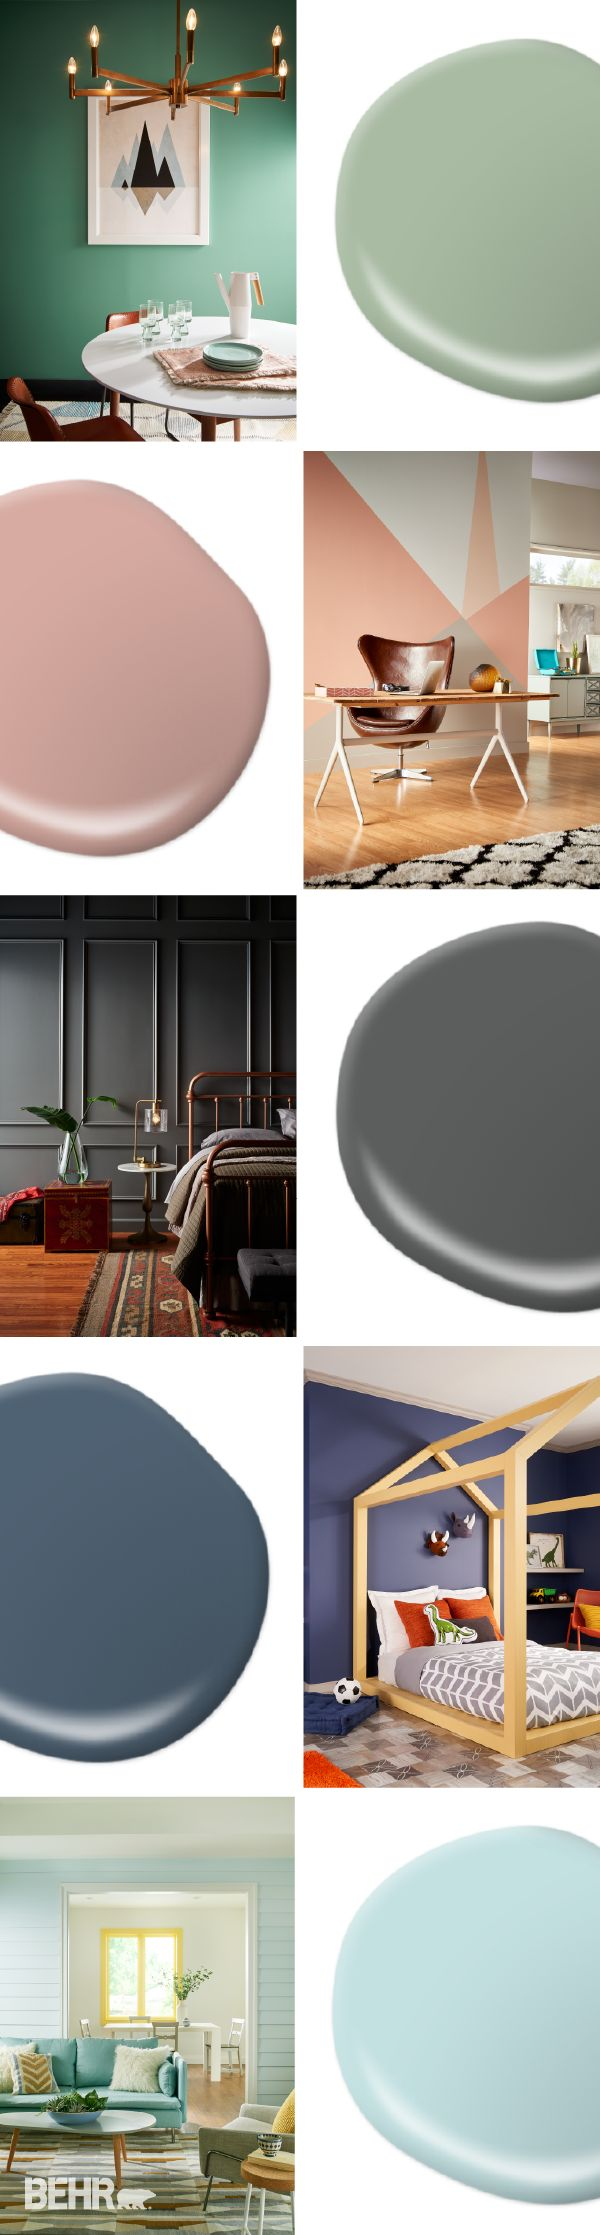 The 2017 BEHR Color Trends are here to solve all your design dilemmas. If you're wondering what shade to paint your sunroom, check out Peek a Blue for a beachy feel. Try opting for Shades On as a chic slate gray that will give your space an updated and sophisticated vibe.